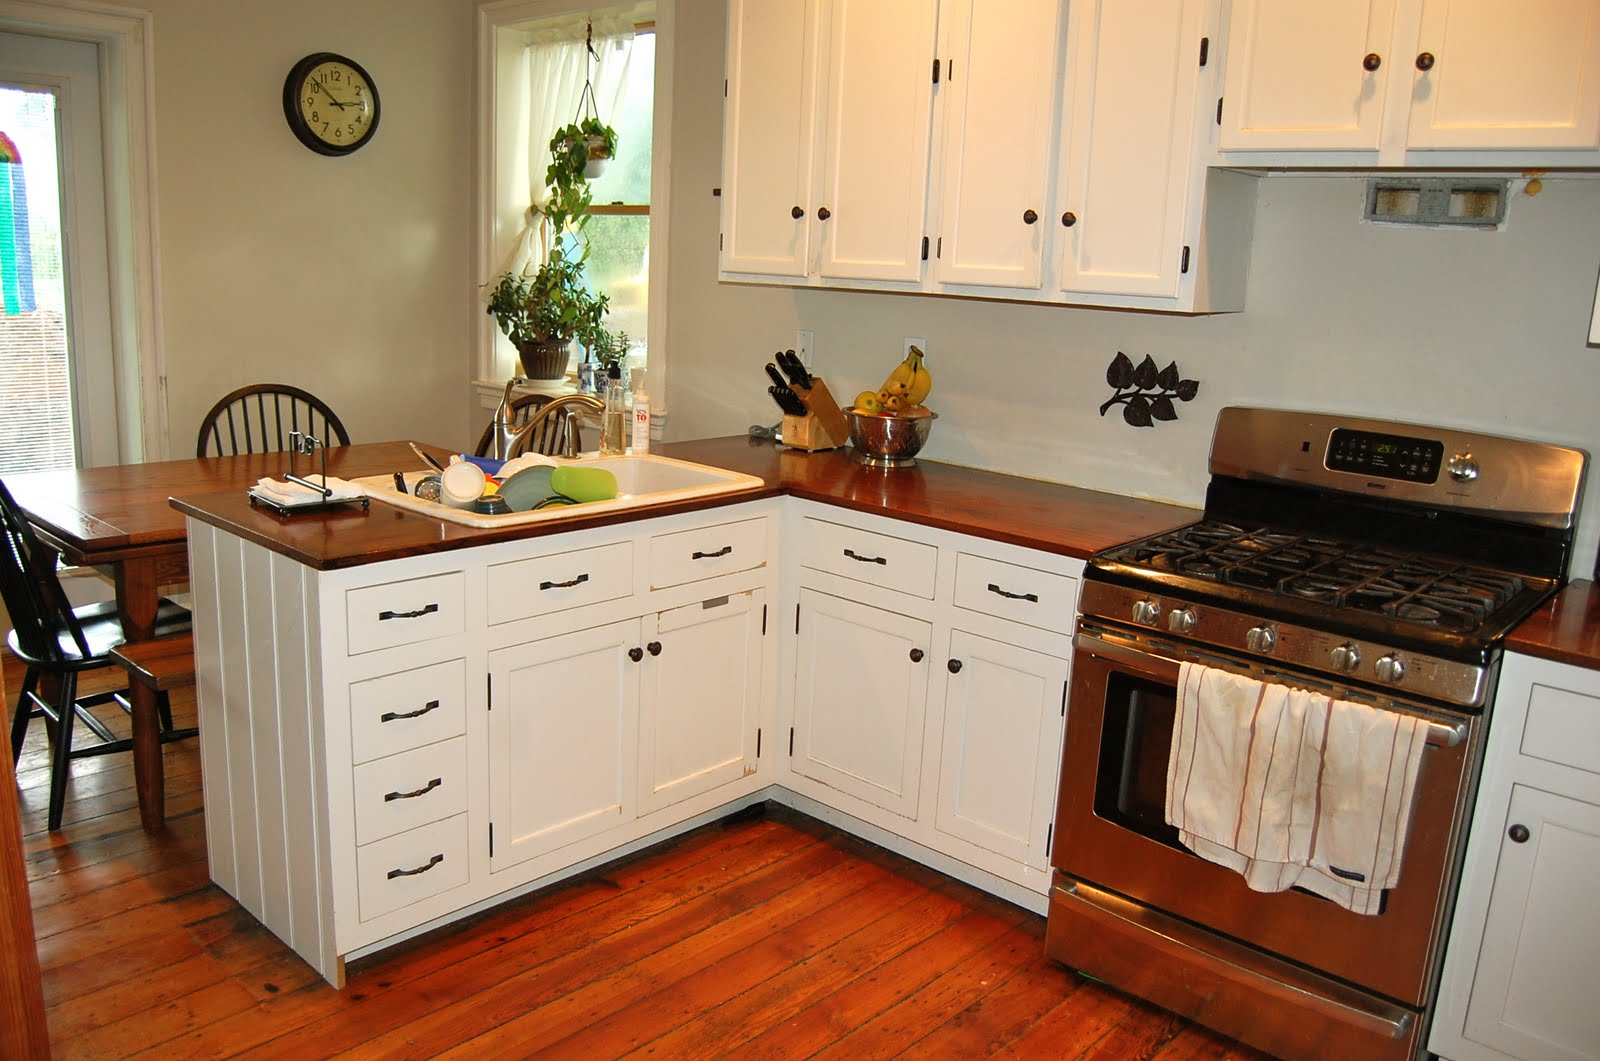 White Kitchen Interior with Wooden Countertop